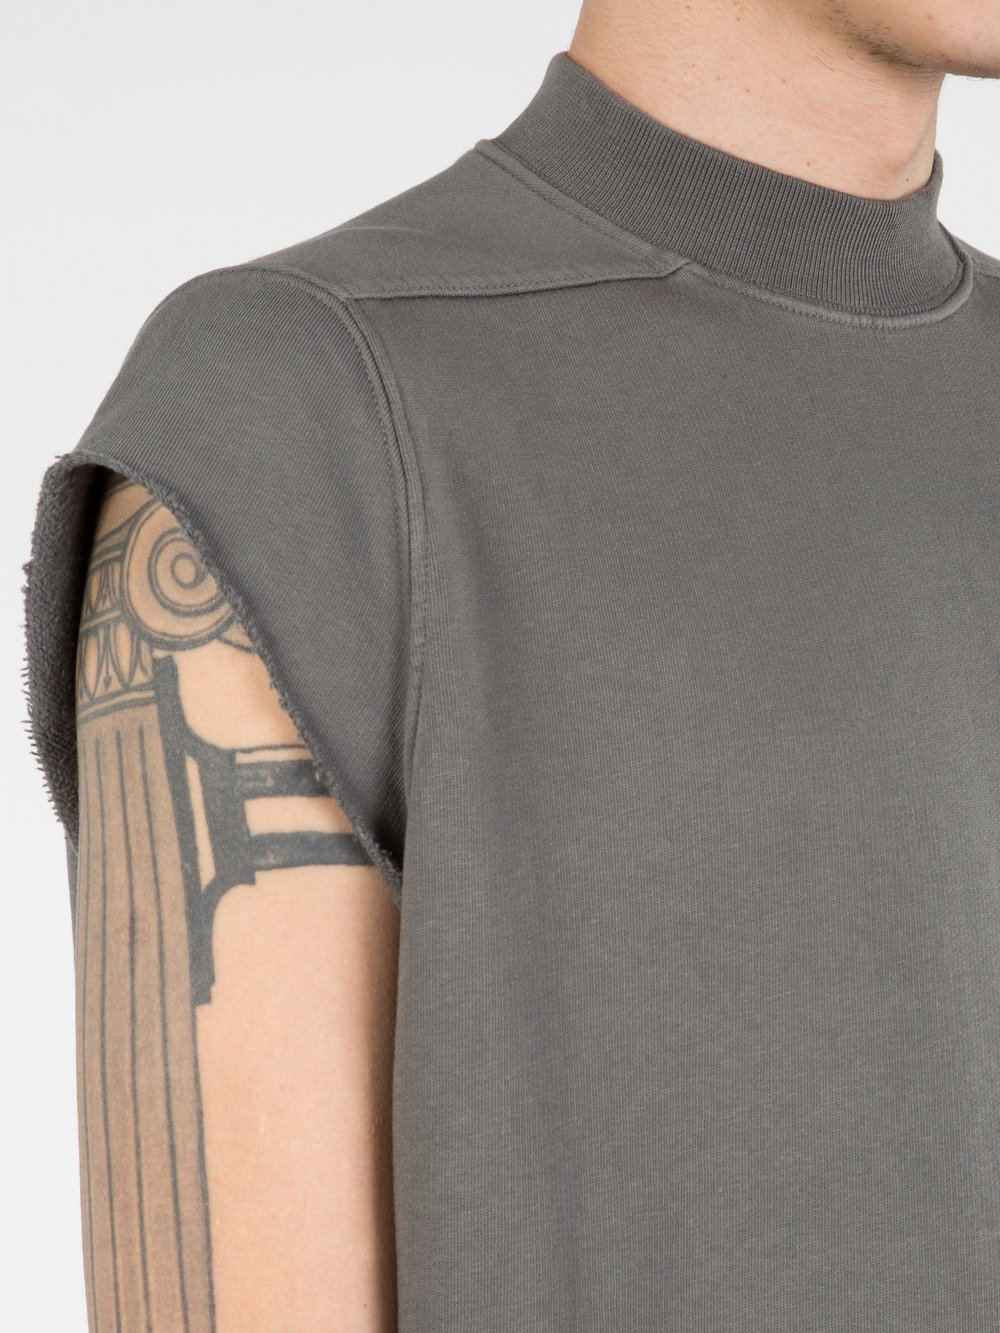 RICK OWENS DRKSHDW - SLEEVELESS JUMBO TOP